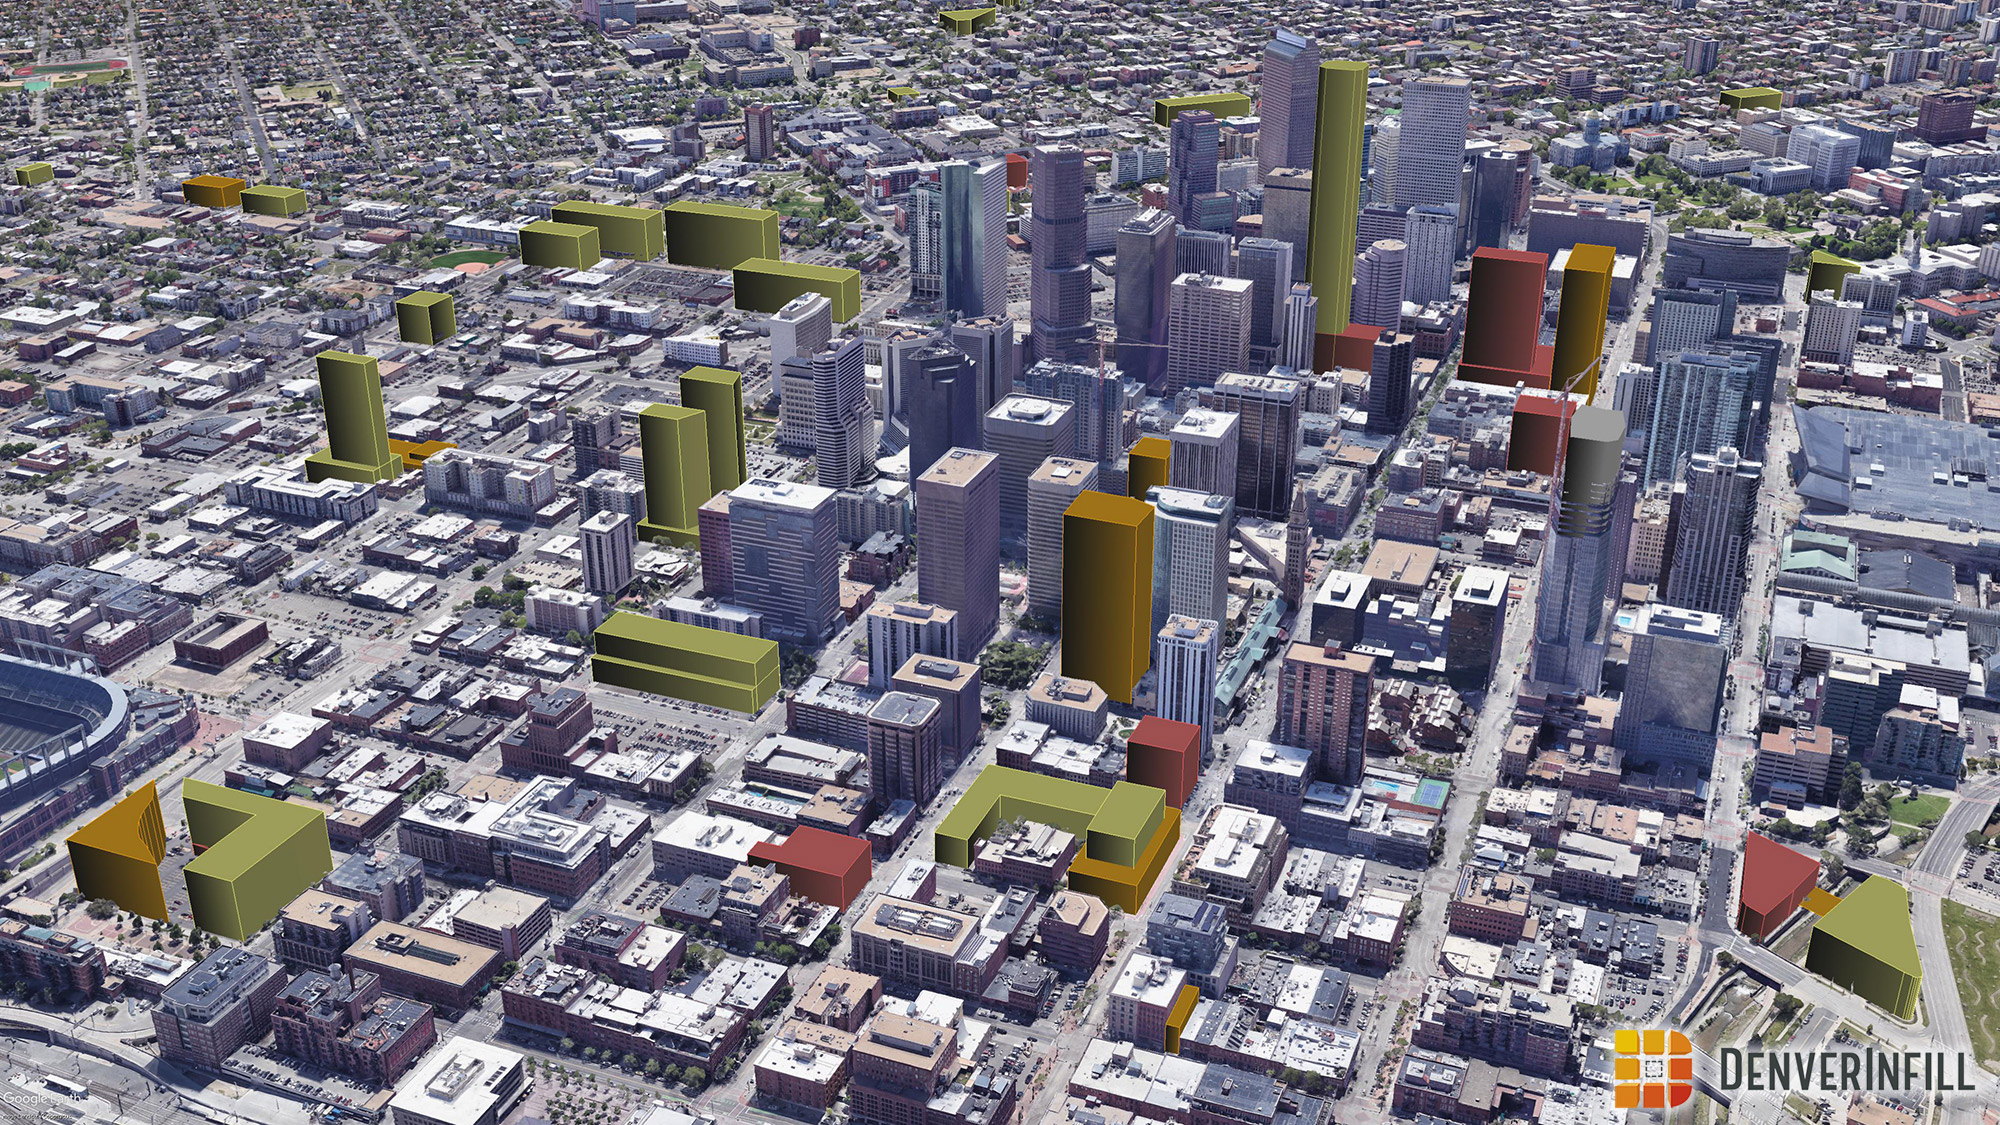 Denver 3D future skyline - view 2